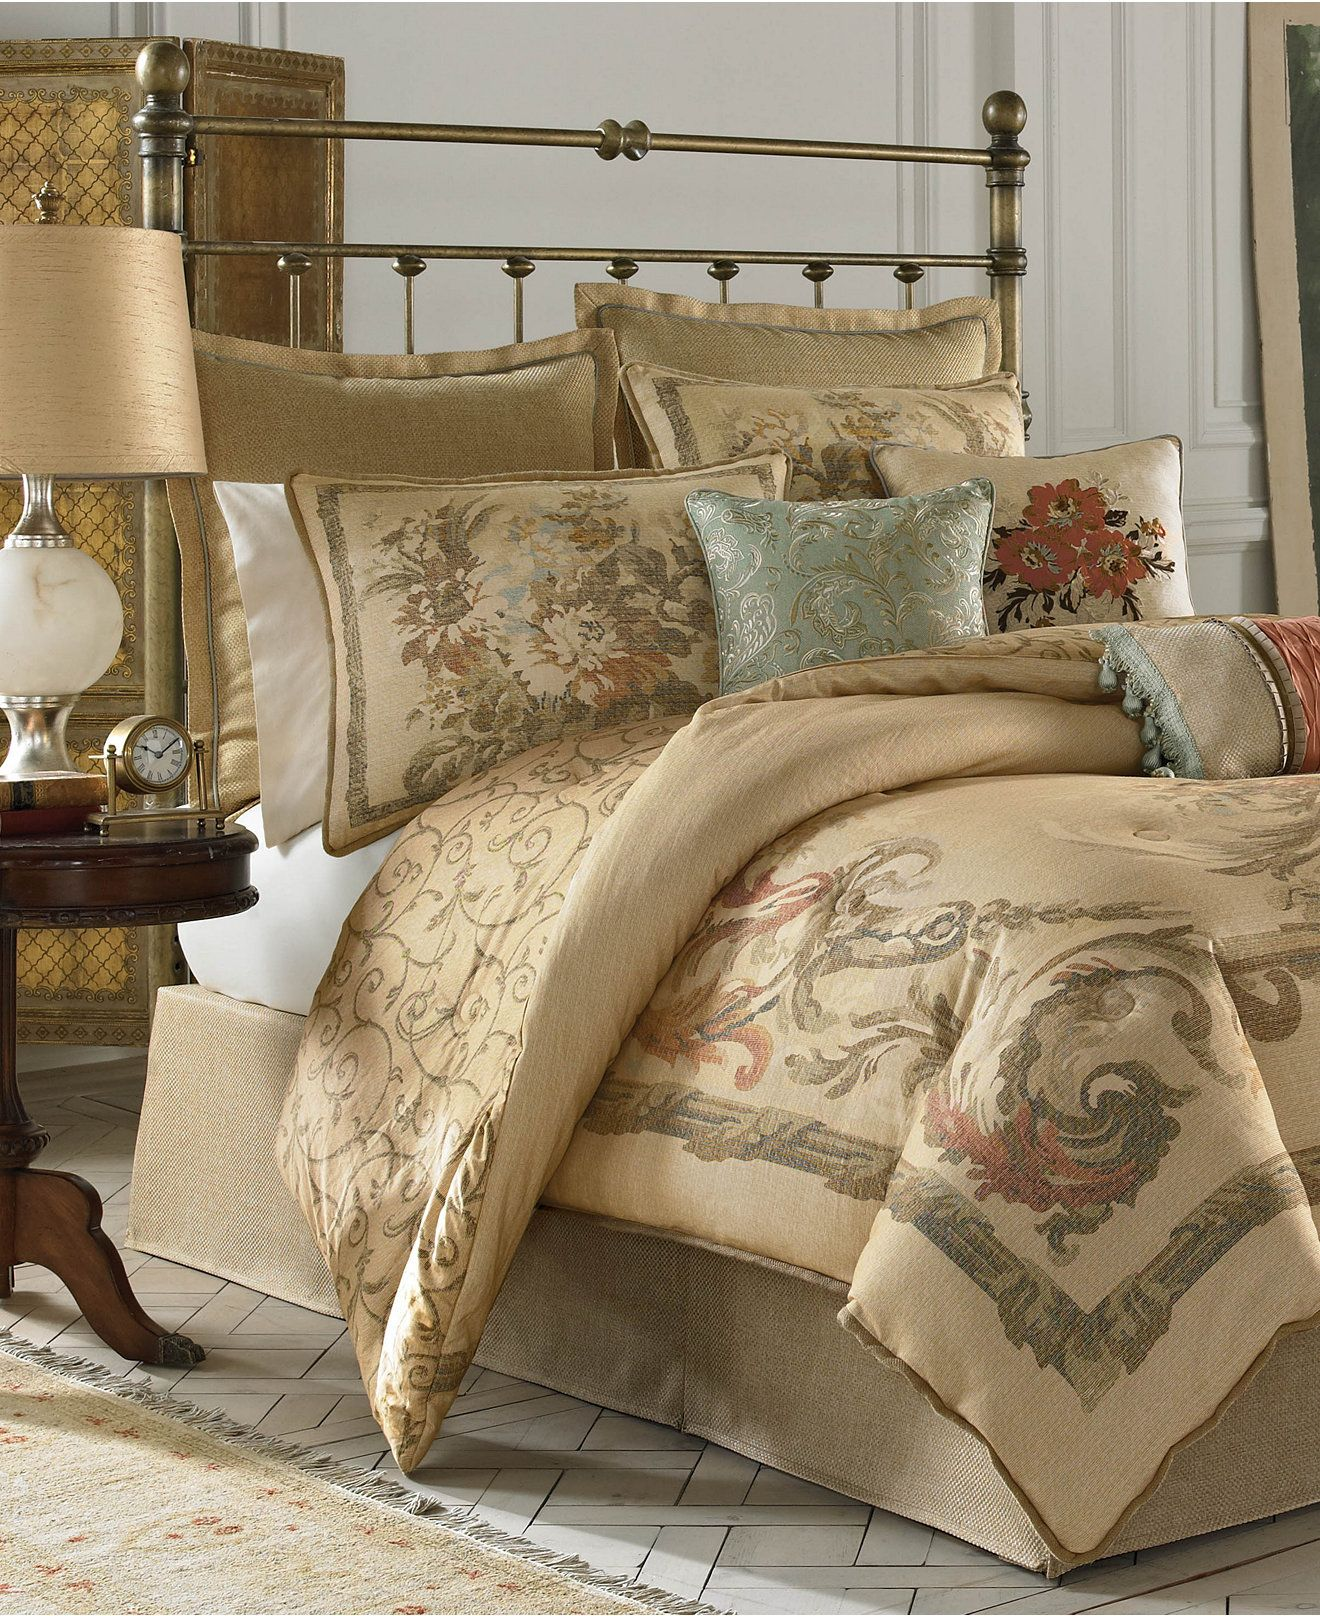 Croscill Normandy Comforter Sets - Bedding Collections - Bed ...